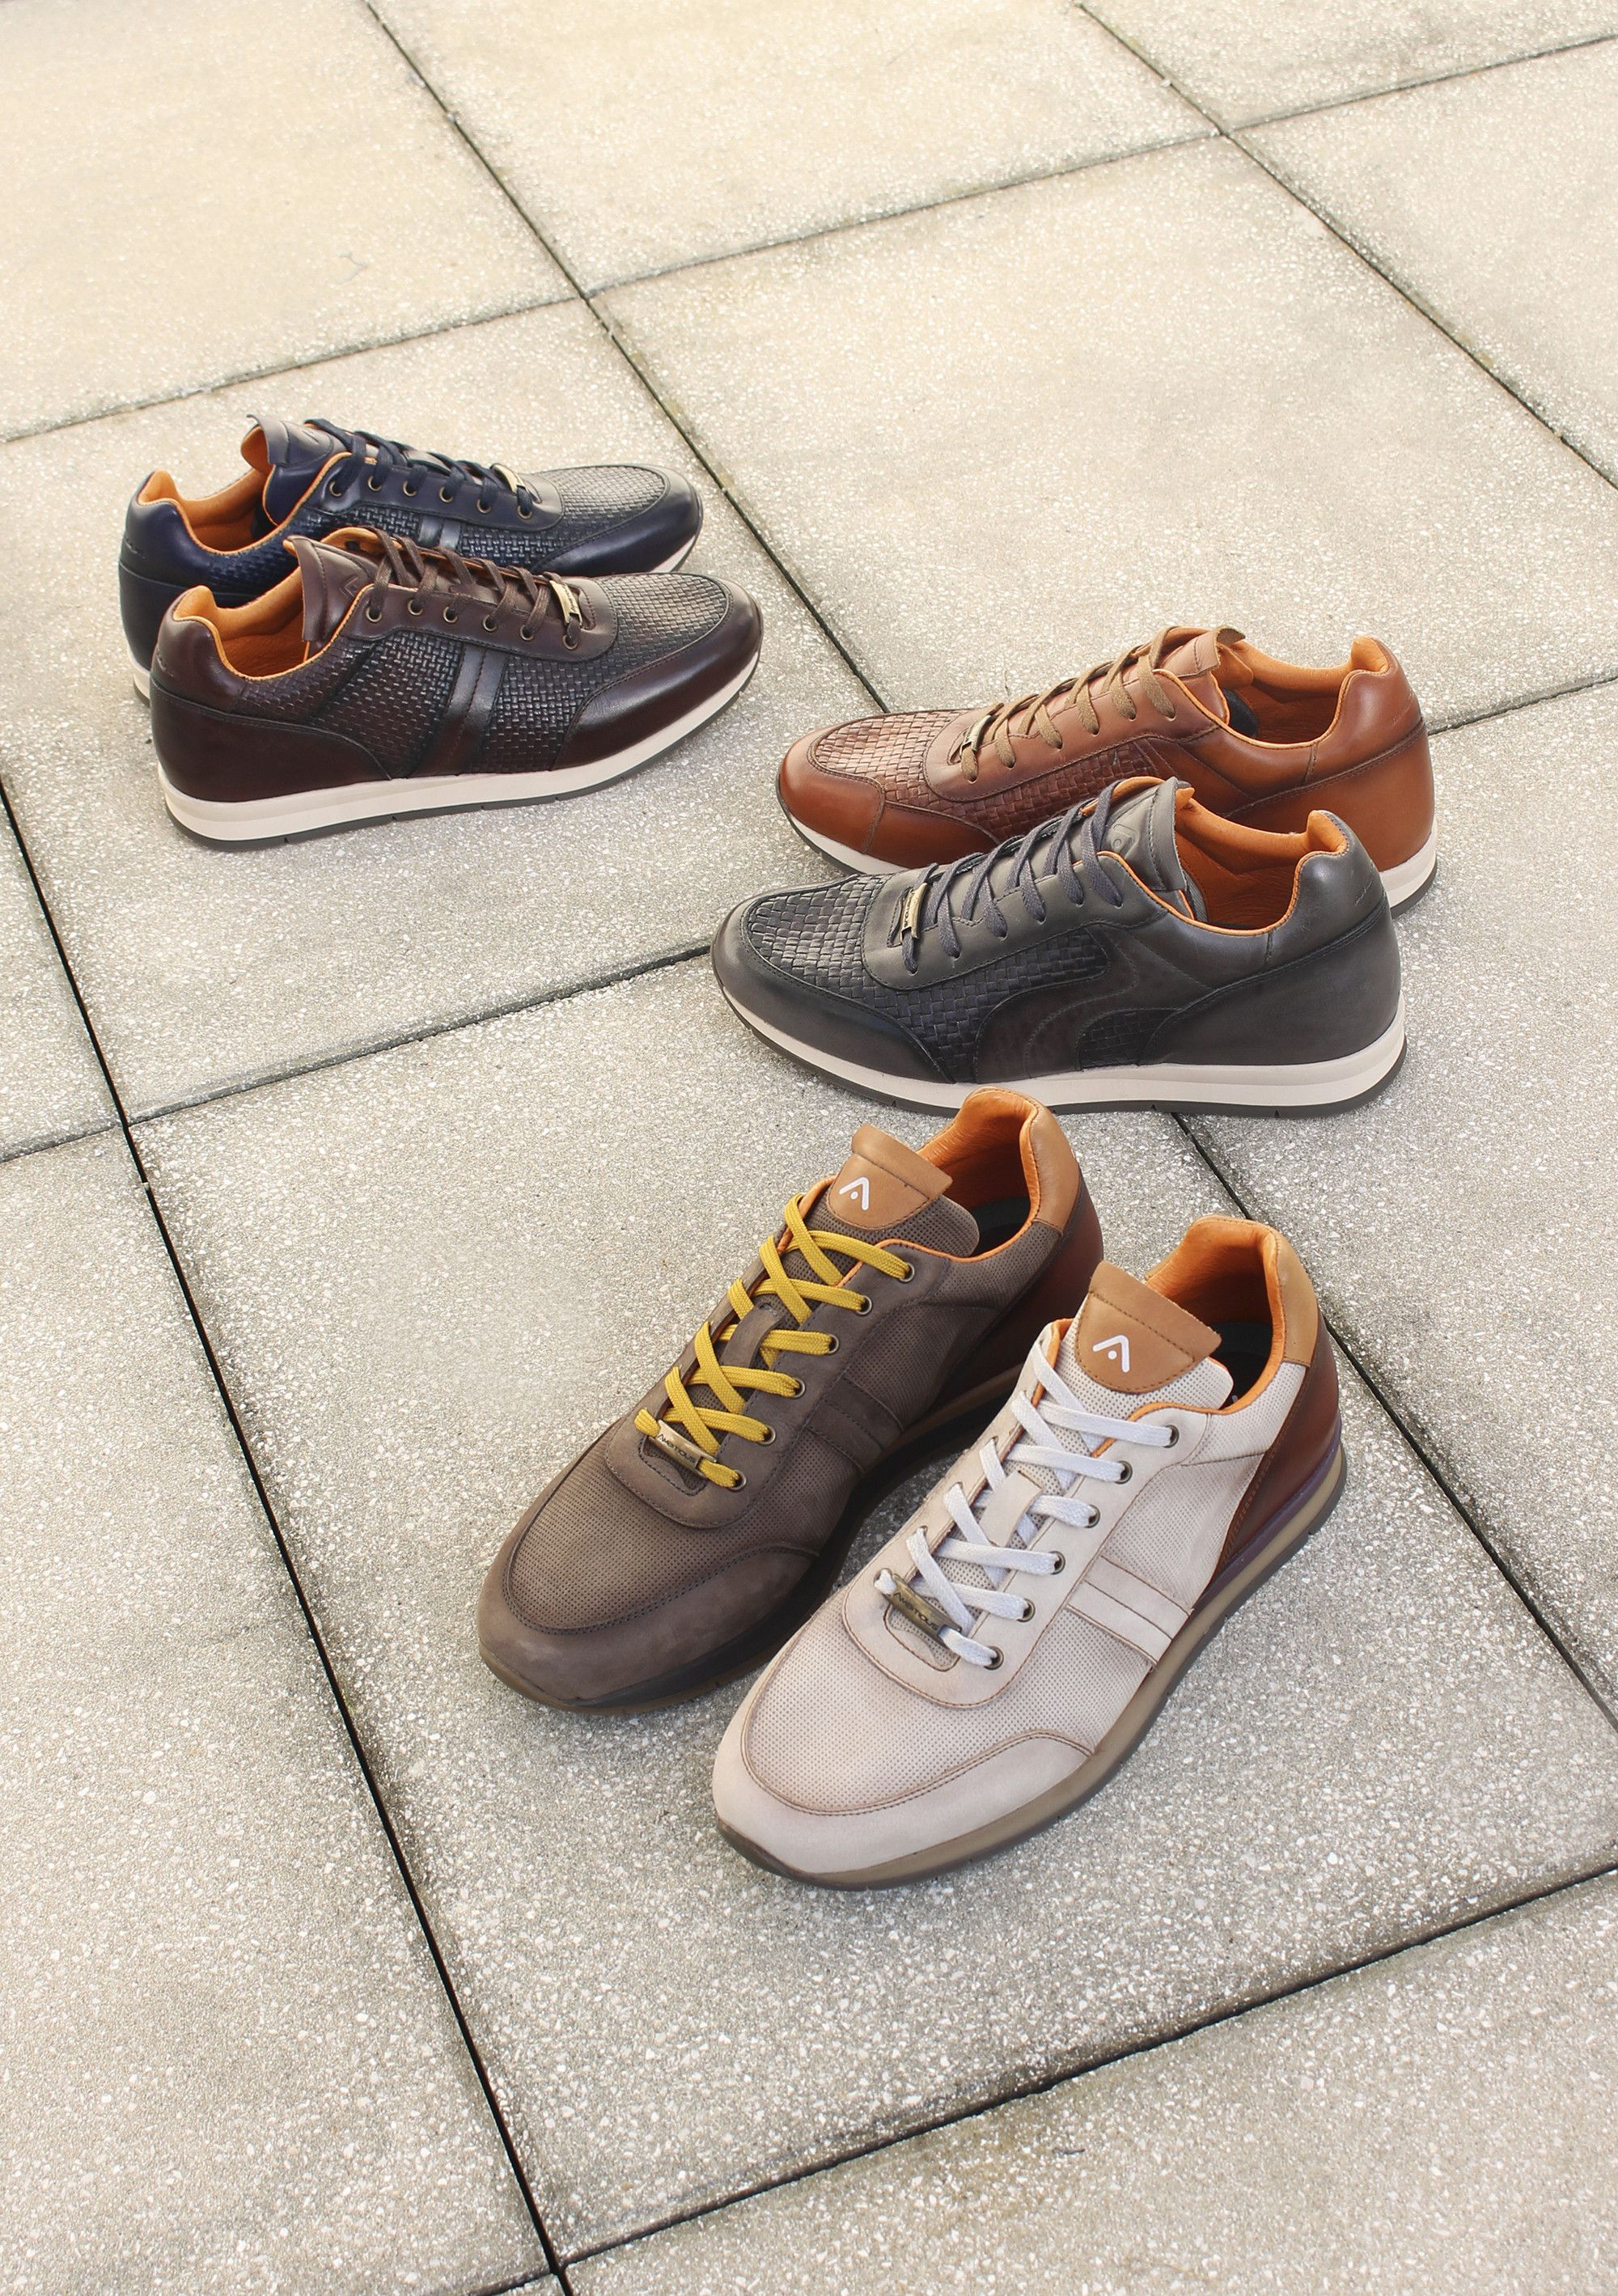 All The Sneakers We Produce With Ambition See More At Http Www Ambitious Shoes Com Fashion Clothes Shoes Style Shoes Mens Sneakers Fashion Sneakers Men